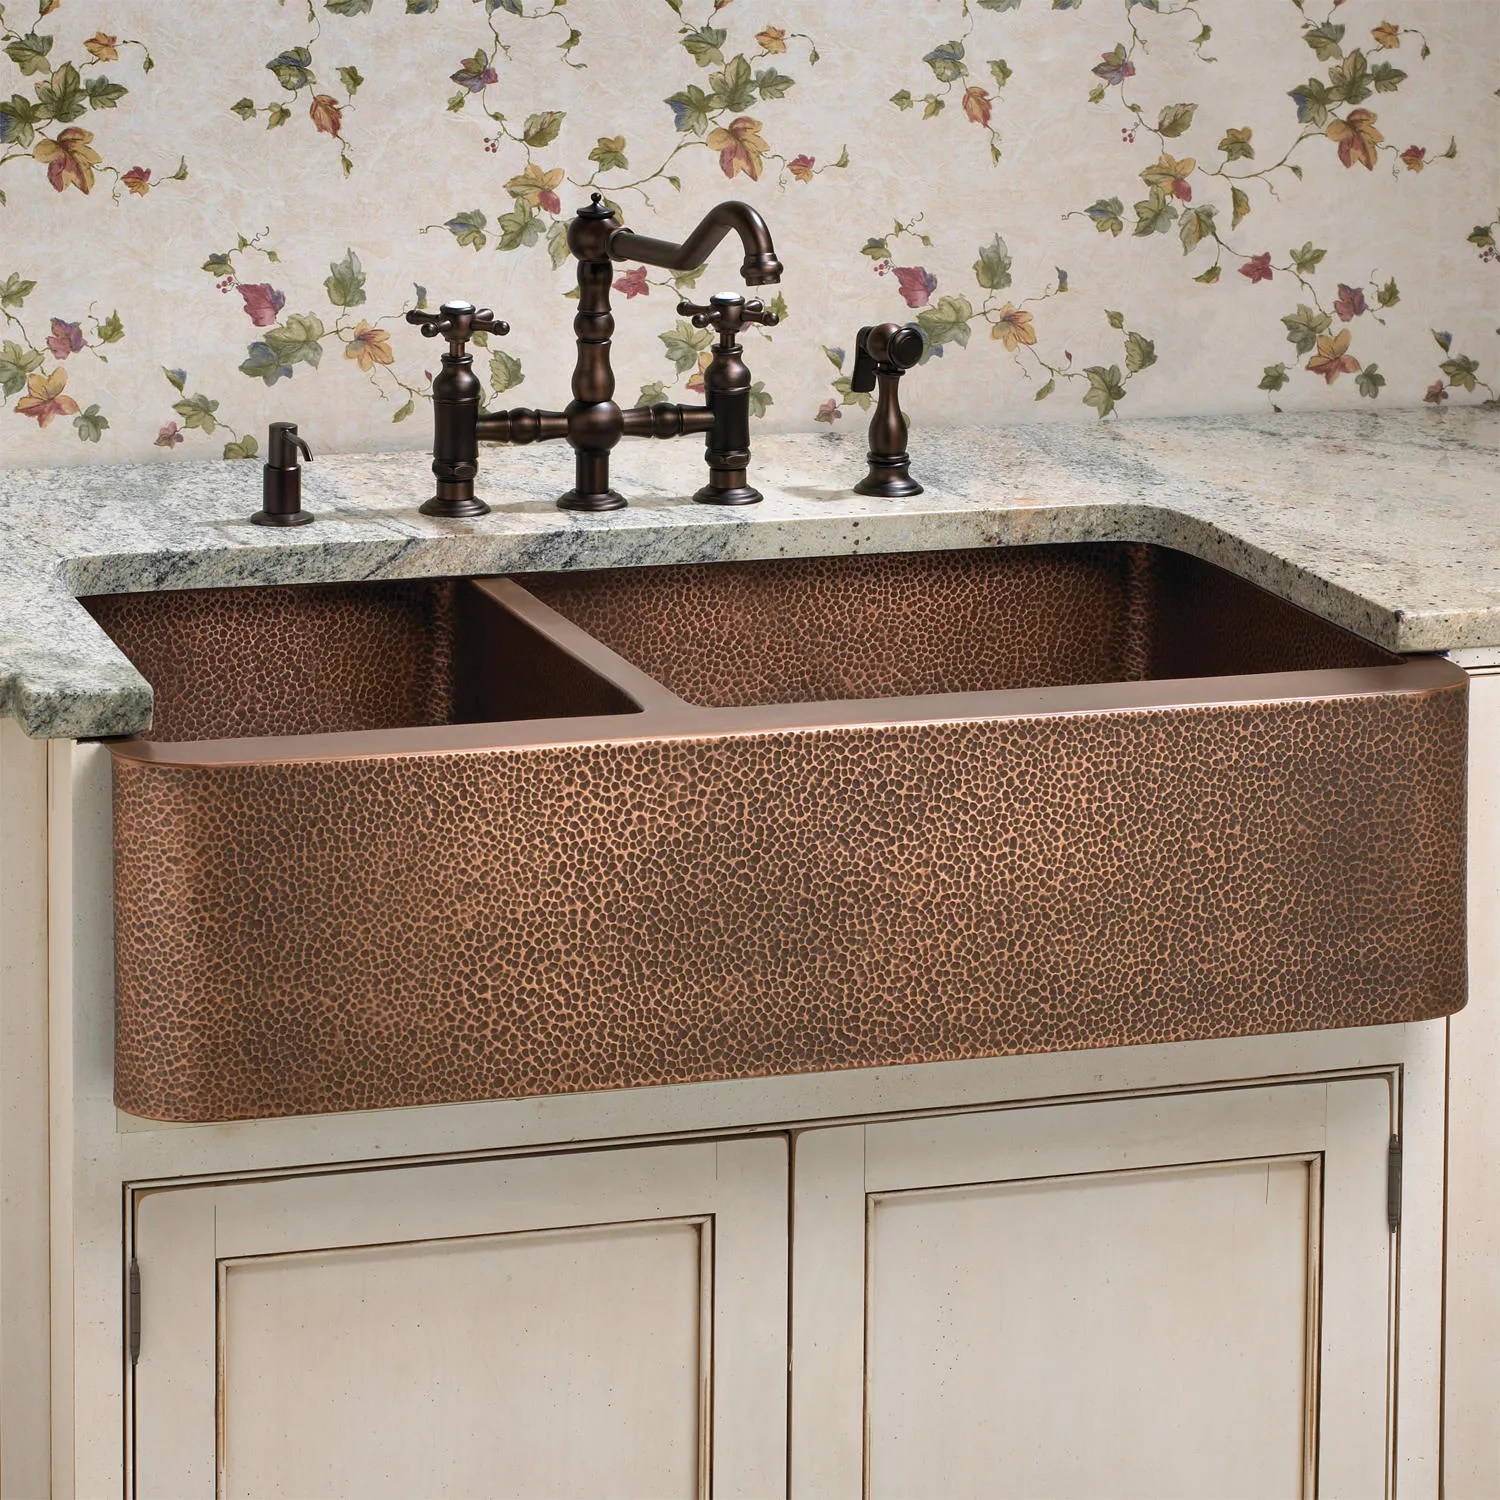 33 Hammered Copper 60 40 Offset Double Bowl Farmhouse Sink Small Bowl Left  eBay